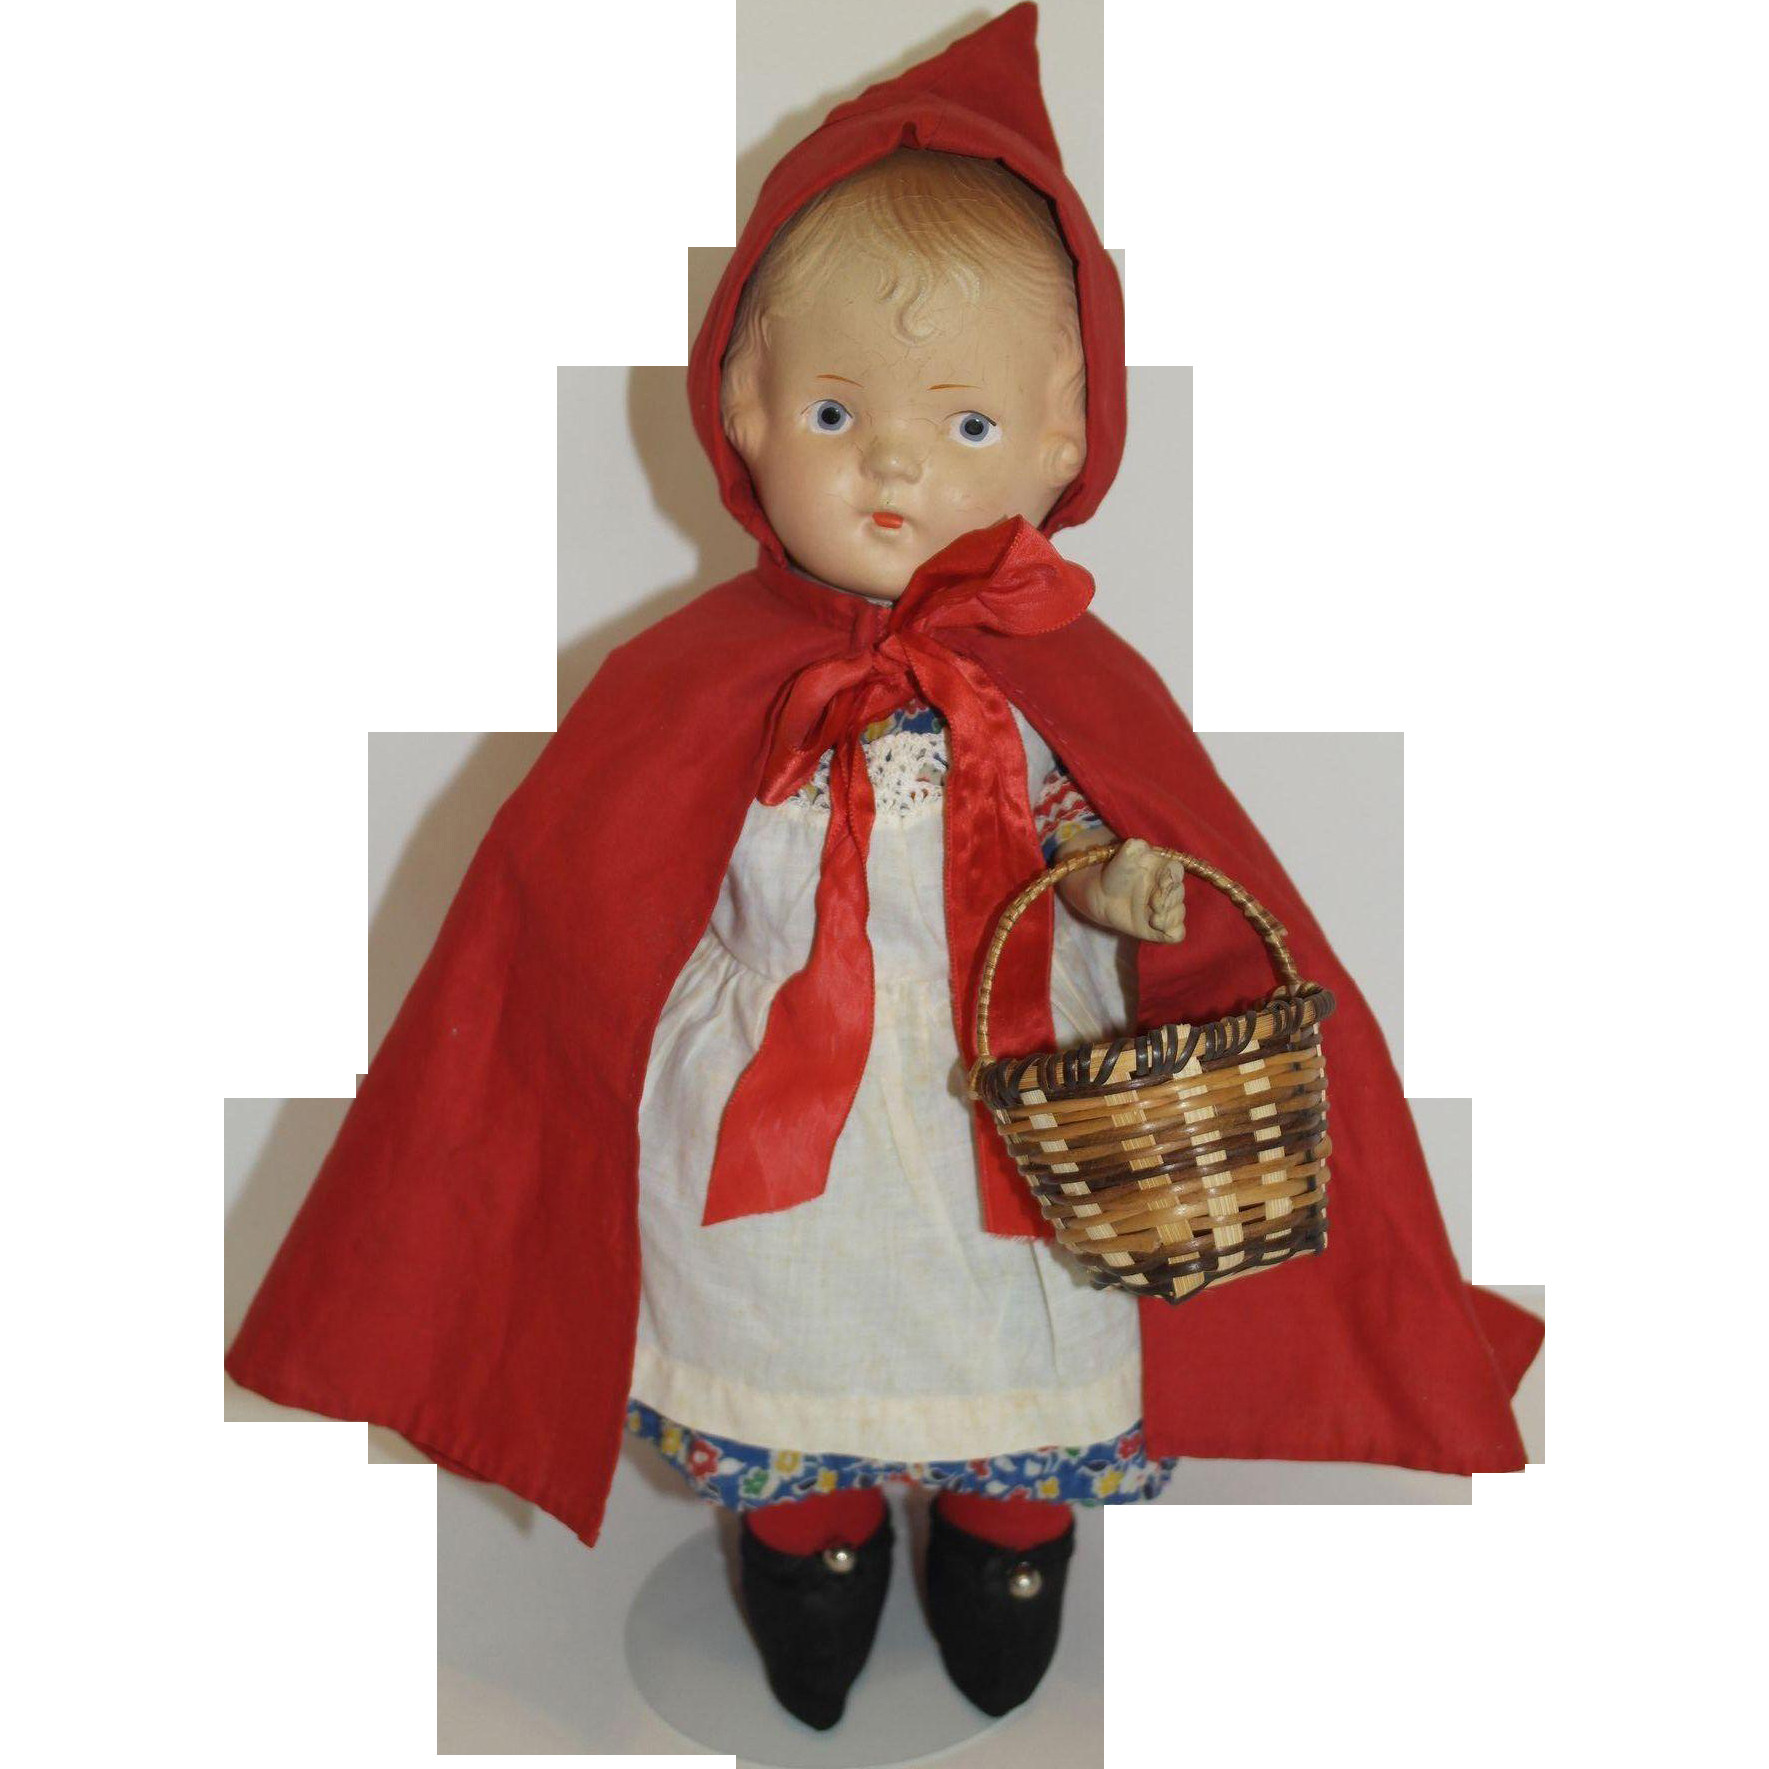 1930 s Little Red Riding Hood Doll from debscedarchest on